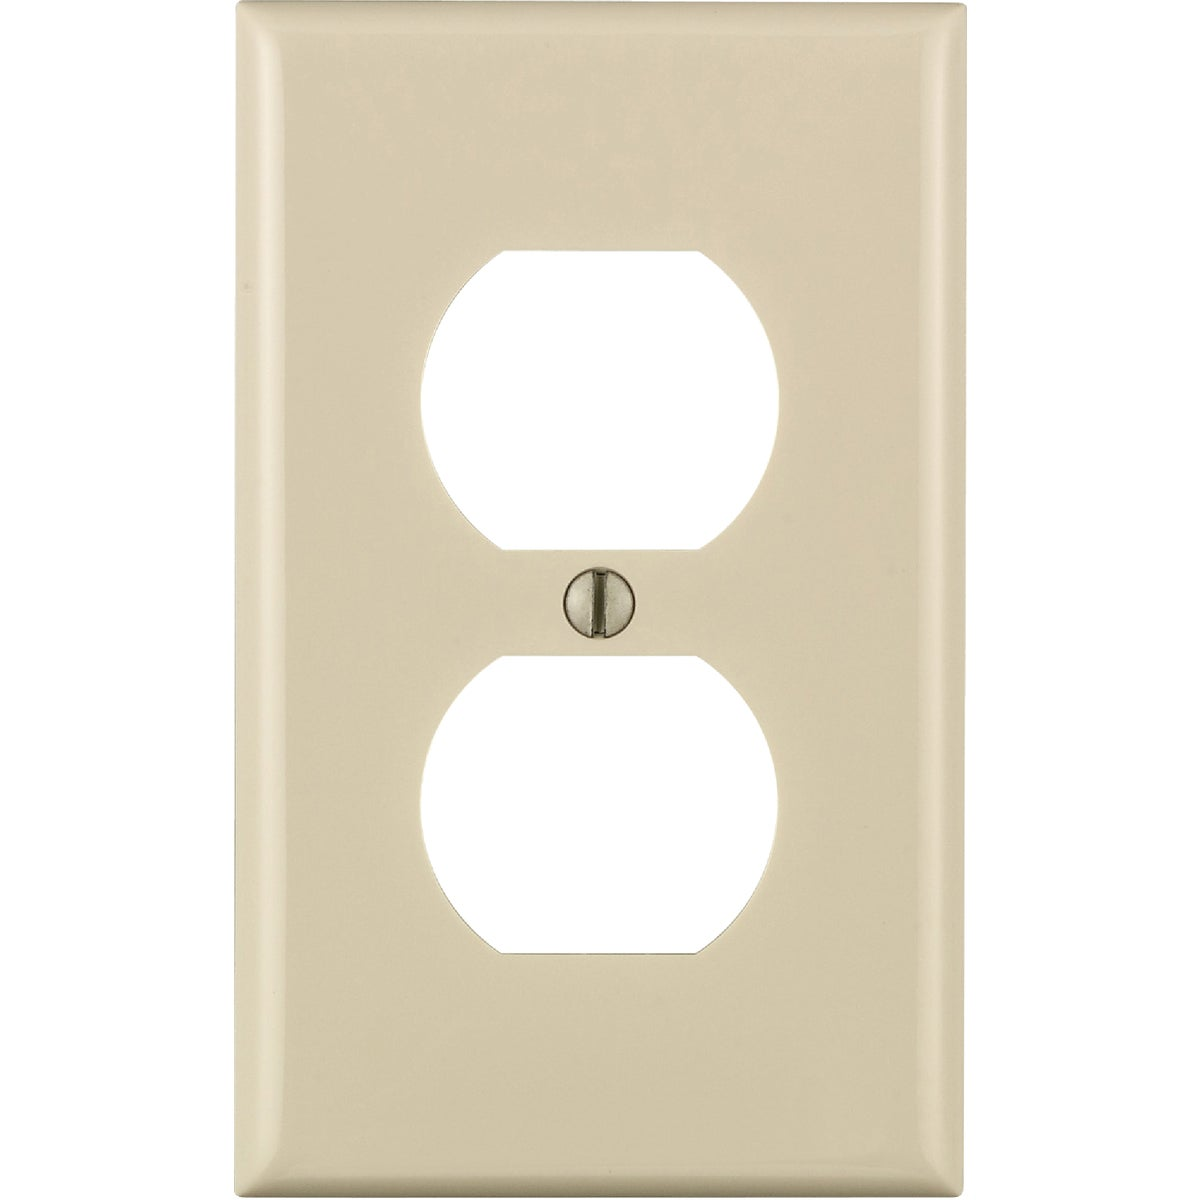 LT ALM DUPLEX WALLPLATE - 024-80703-ONT by Leviton Mfg Co